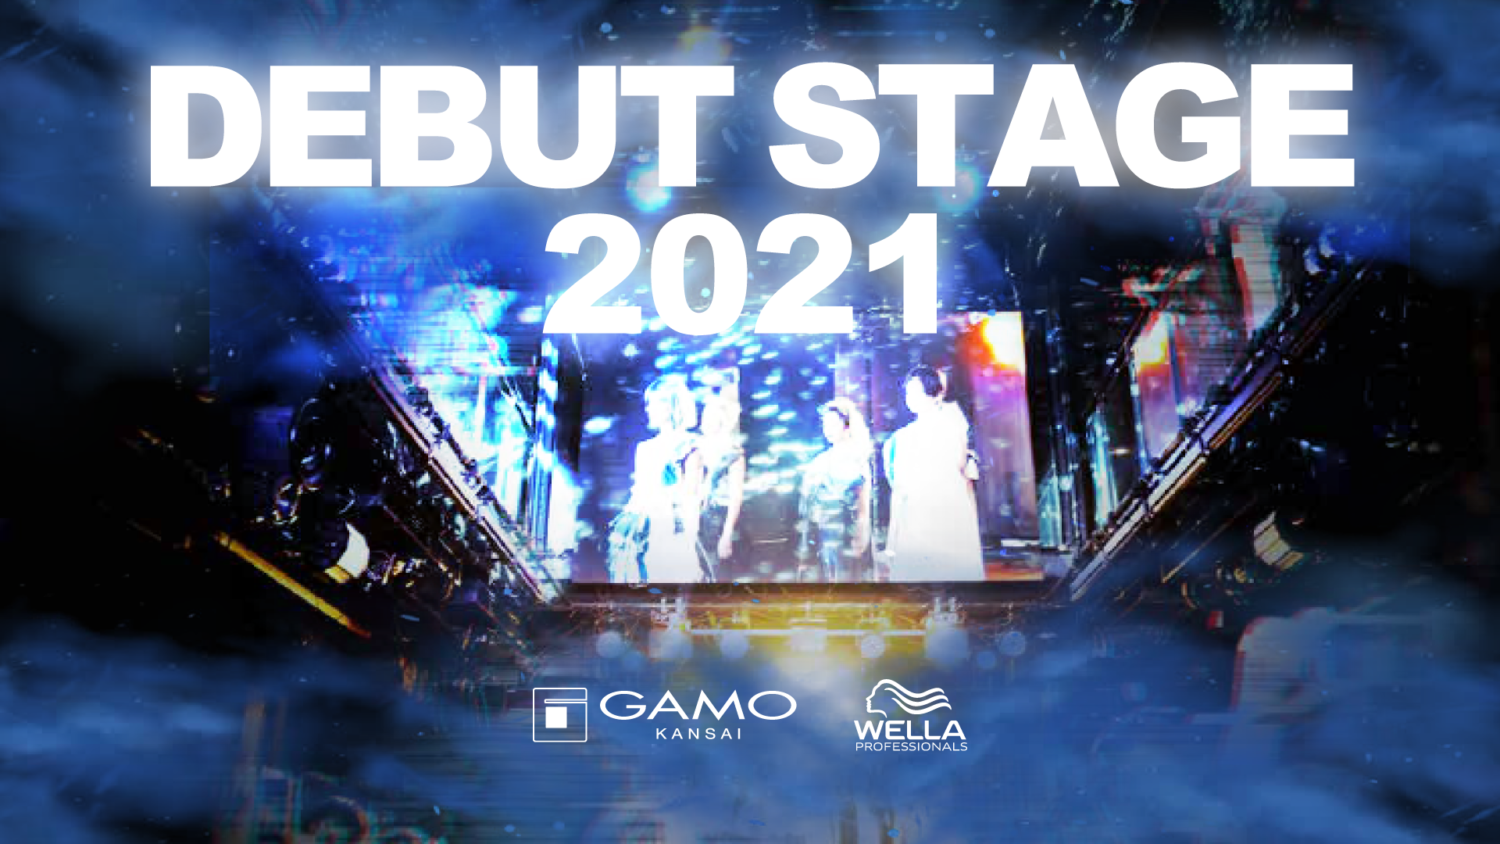 DEBUT STAGE 2021